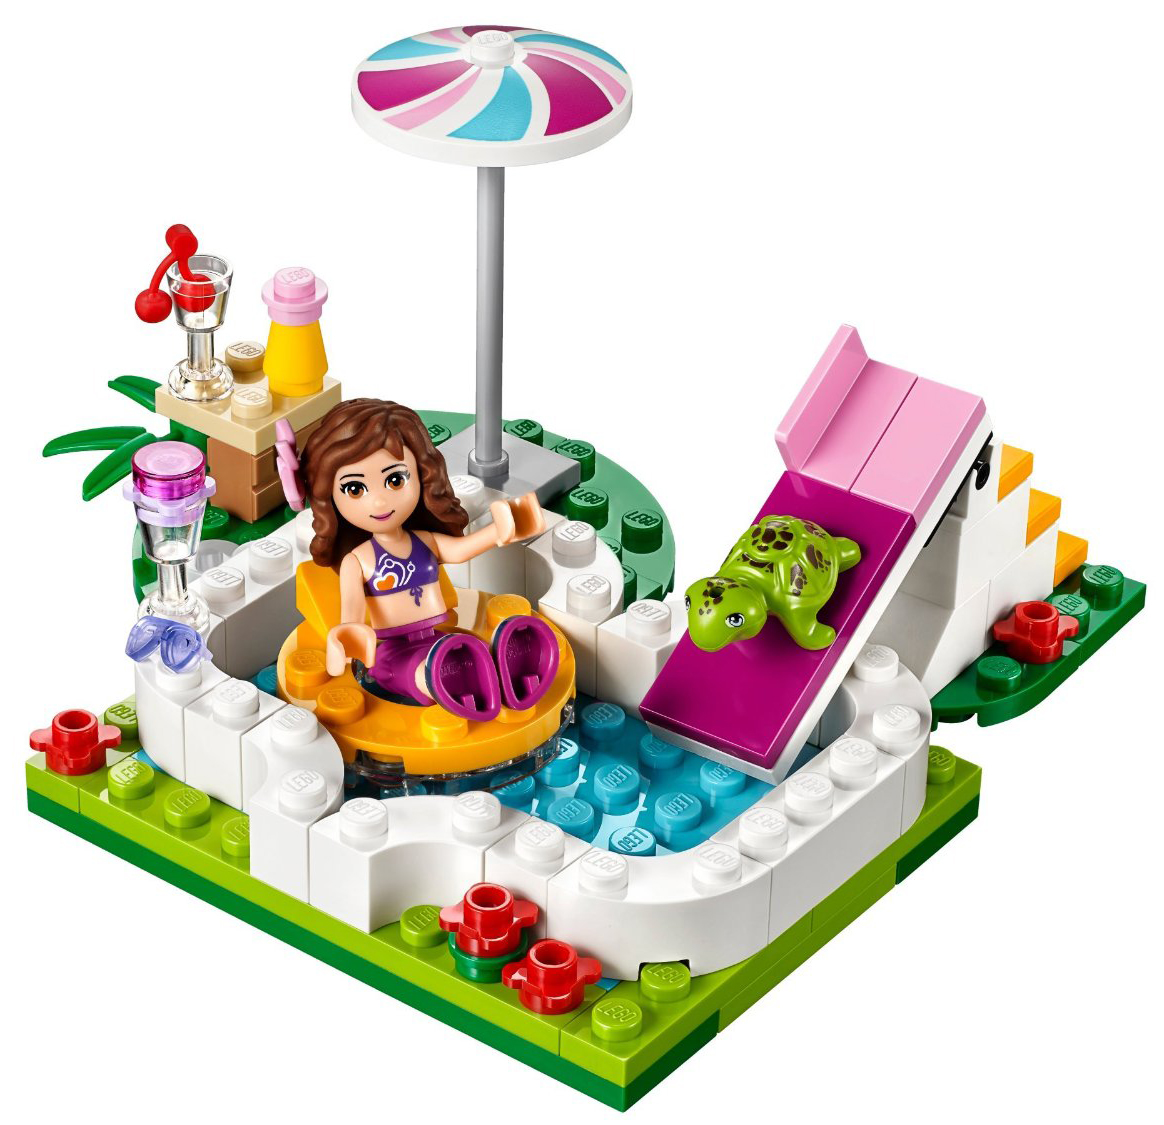 lego friends 41090 pas cher la piscine d 39 olivia. Black Bedroom Furniture Sets. Home Design Ideas